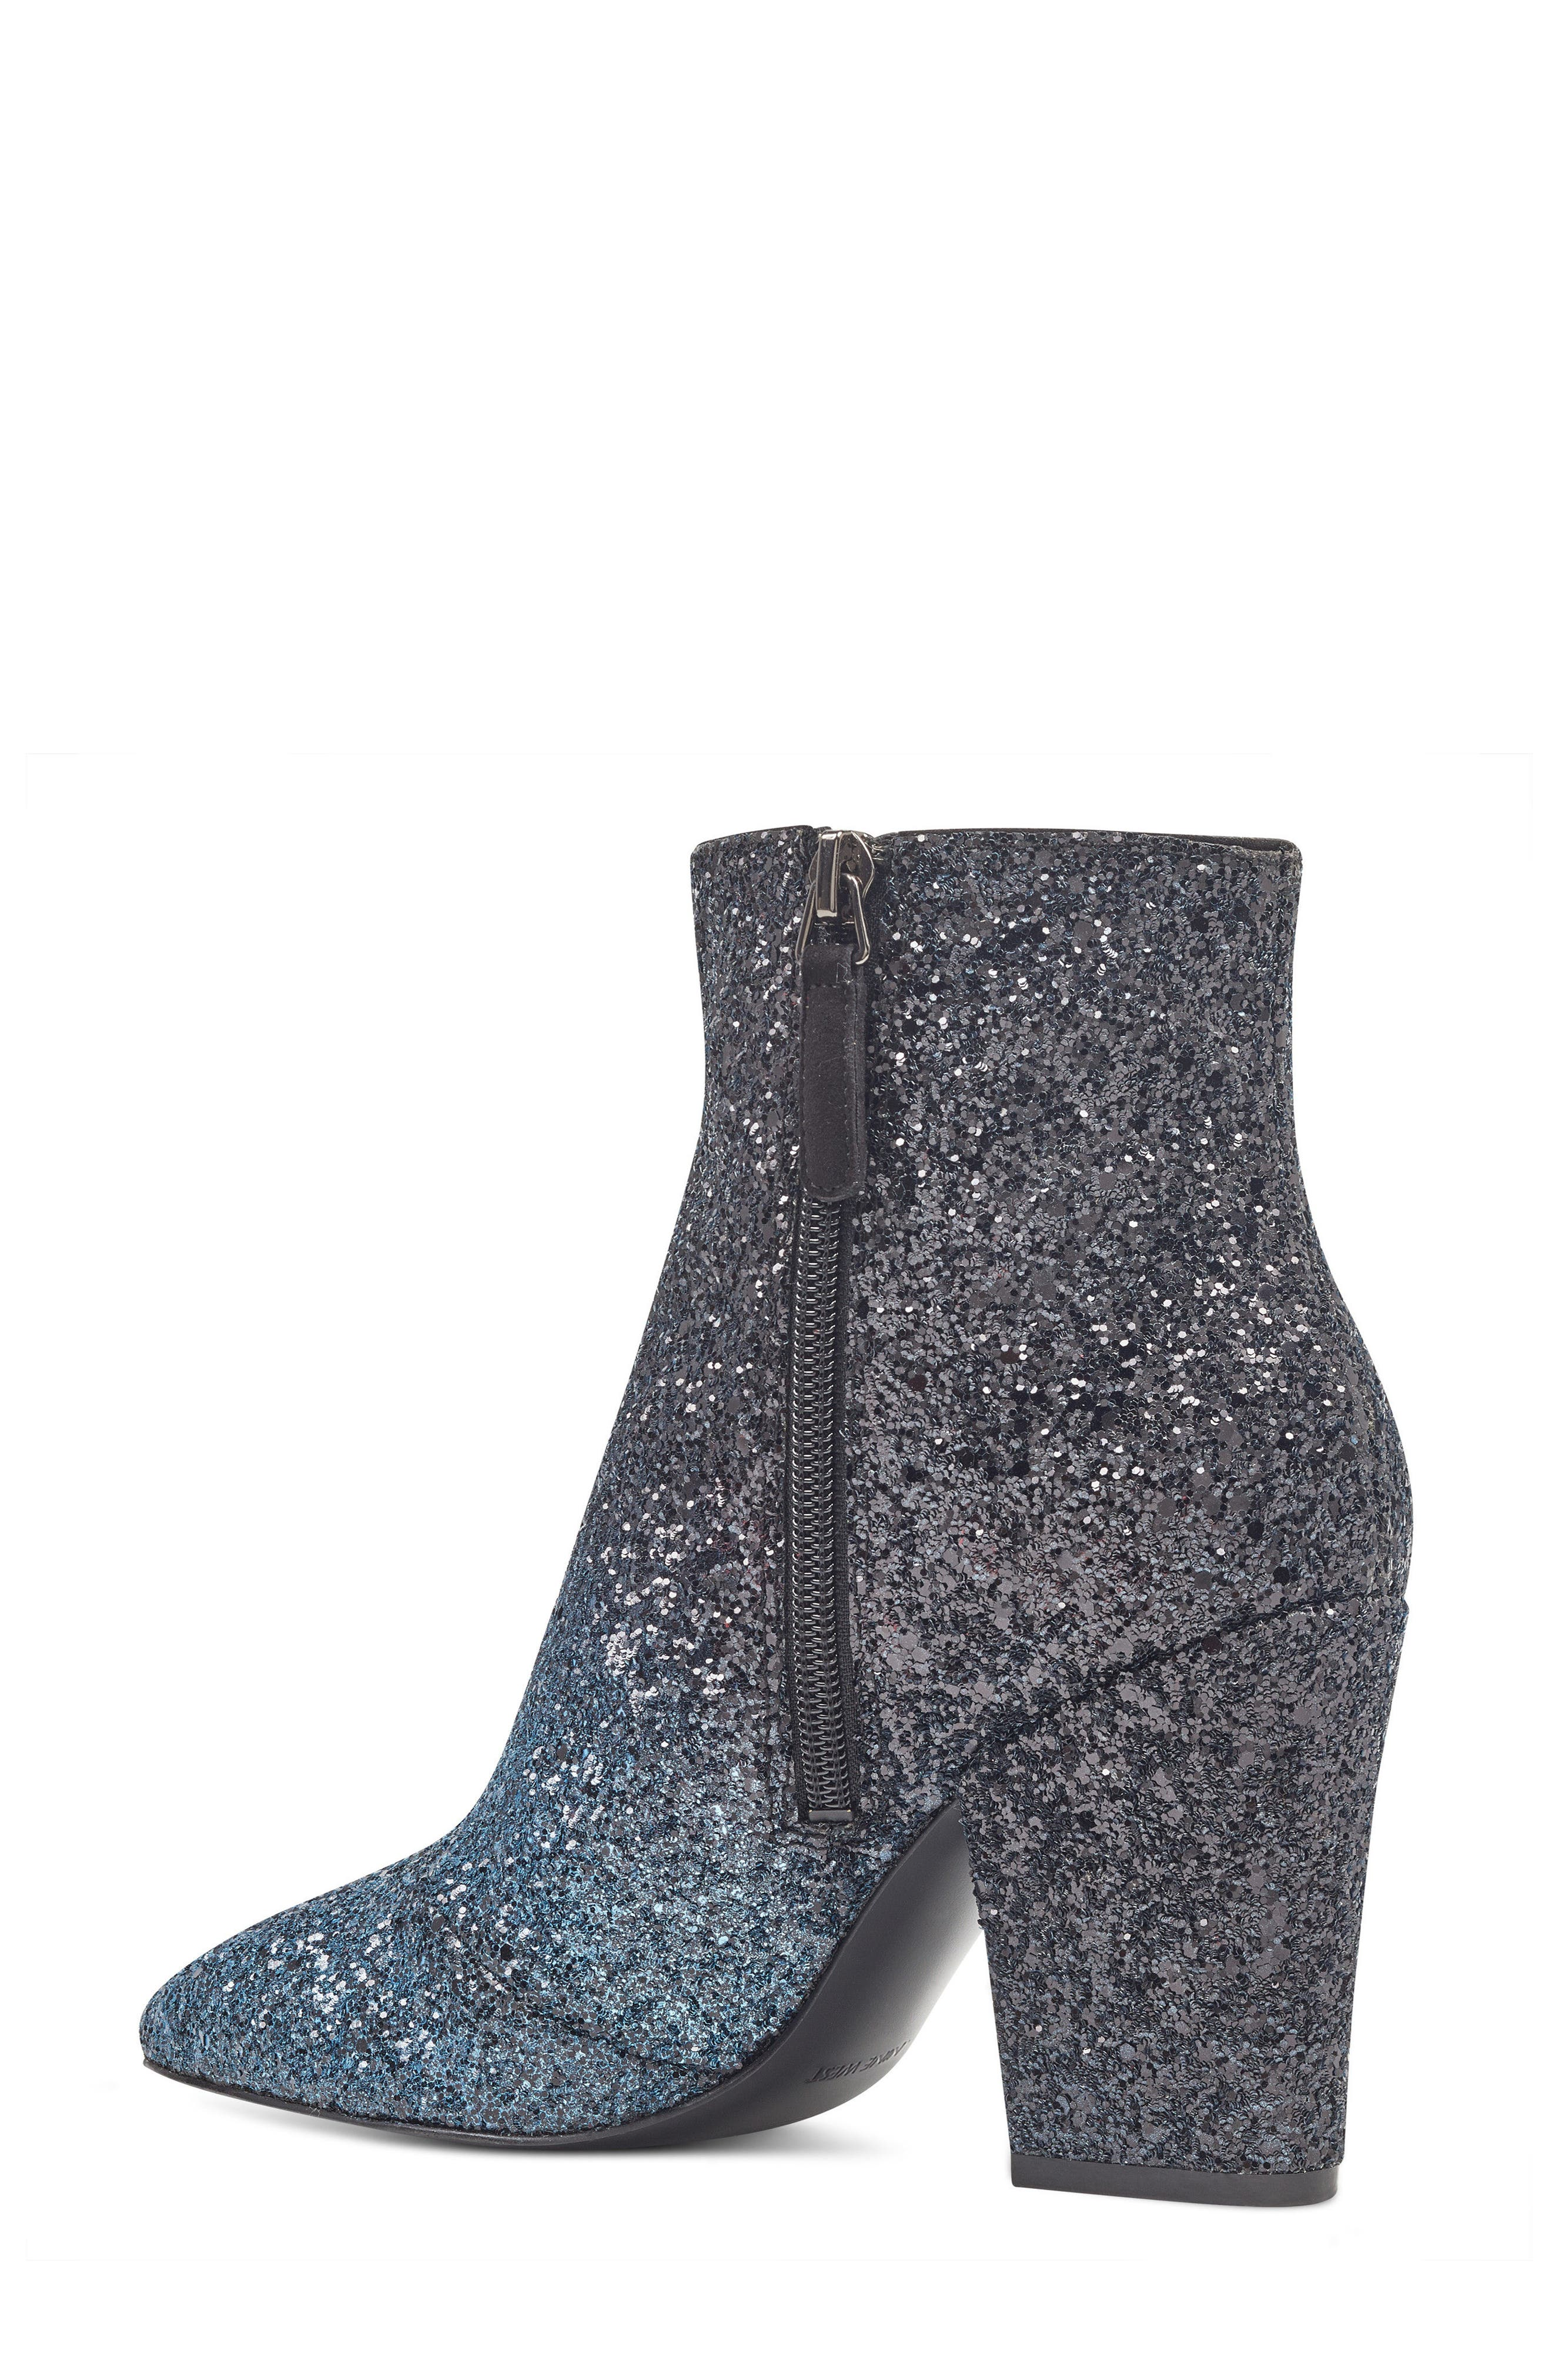 NINE WEST, Savitra Pointy Toe Bootie, Alternate thumbnail 2, color, 040